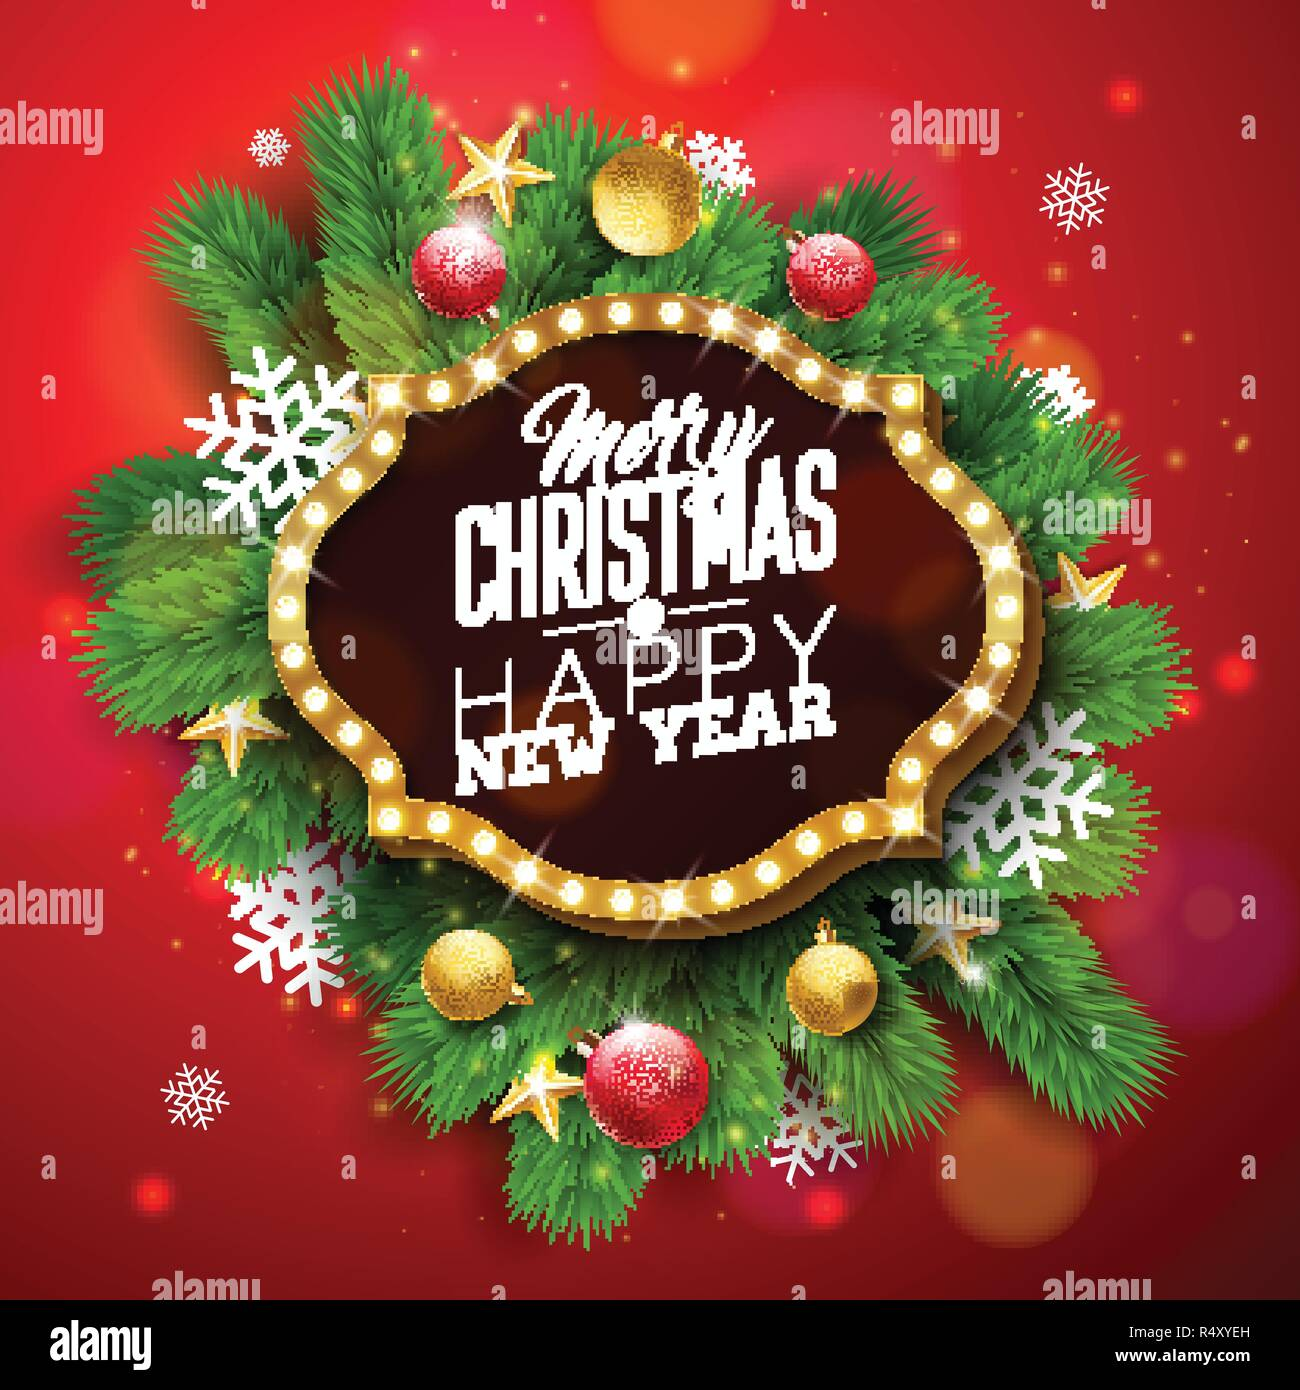 Christmas Board Design.Merry Christmas And Happy New Year Illustration With Light